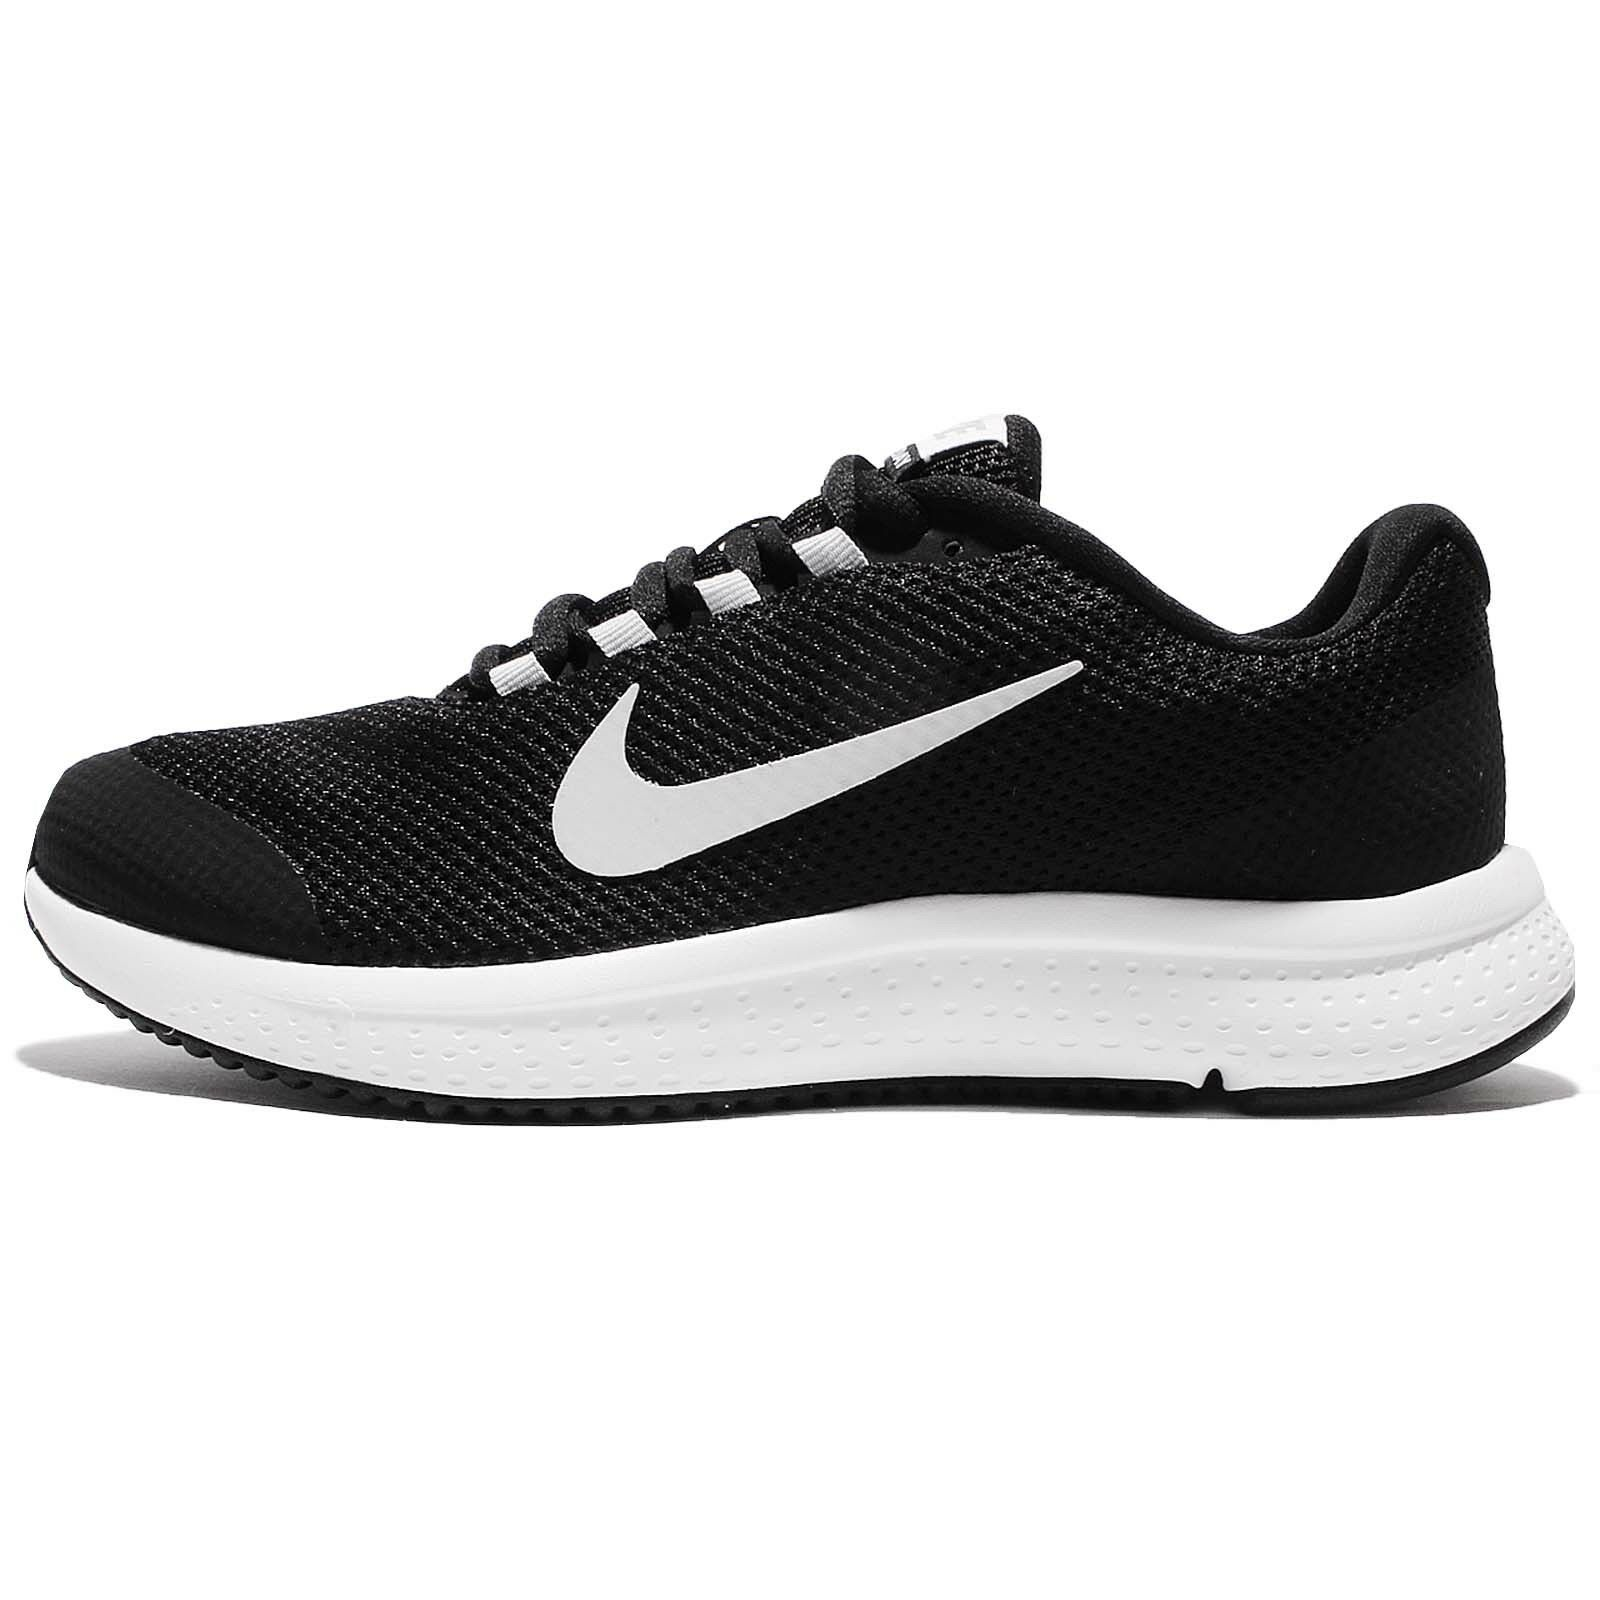 Nike Run All Day Men's Size 8 11 to 11 8 Black White New In Box 8464-001 19c7f8